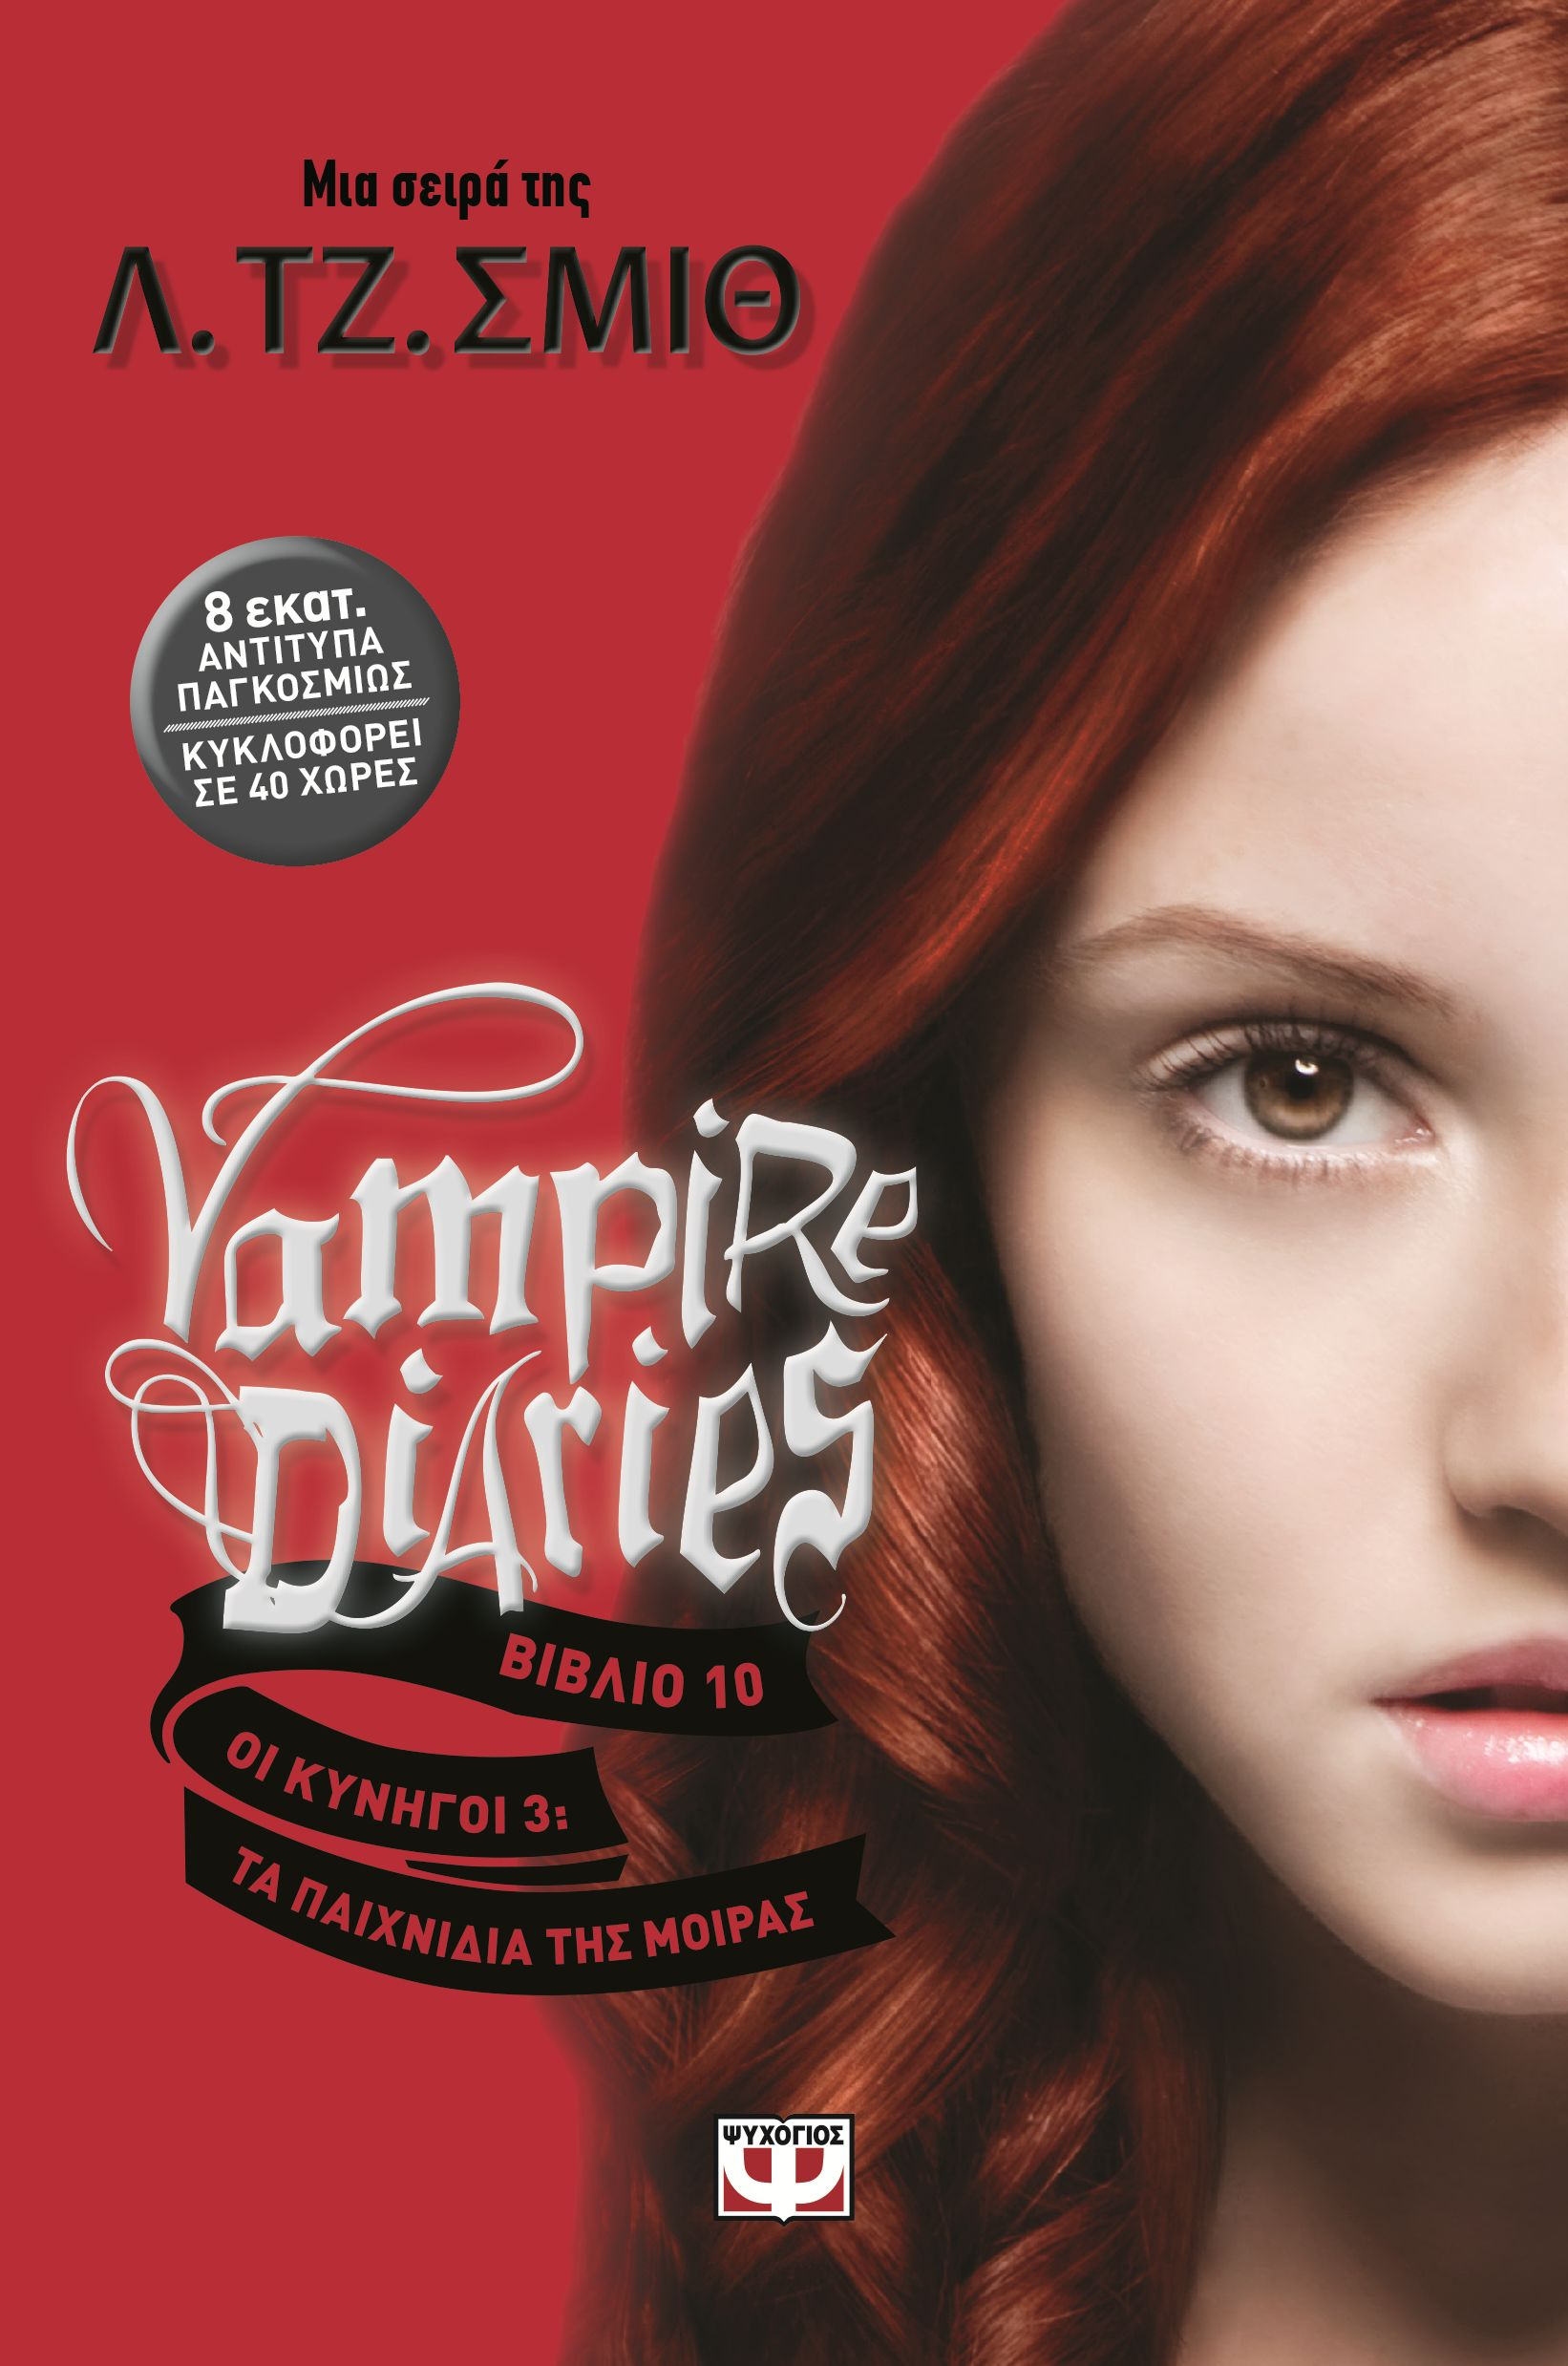 The Vampire Diaries Midnight Pdf